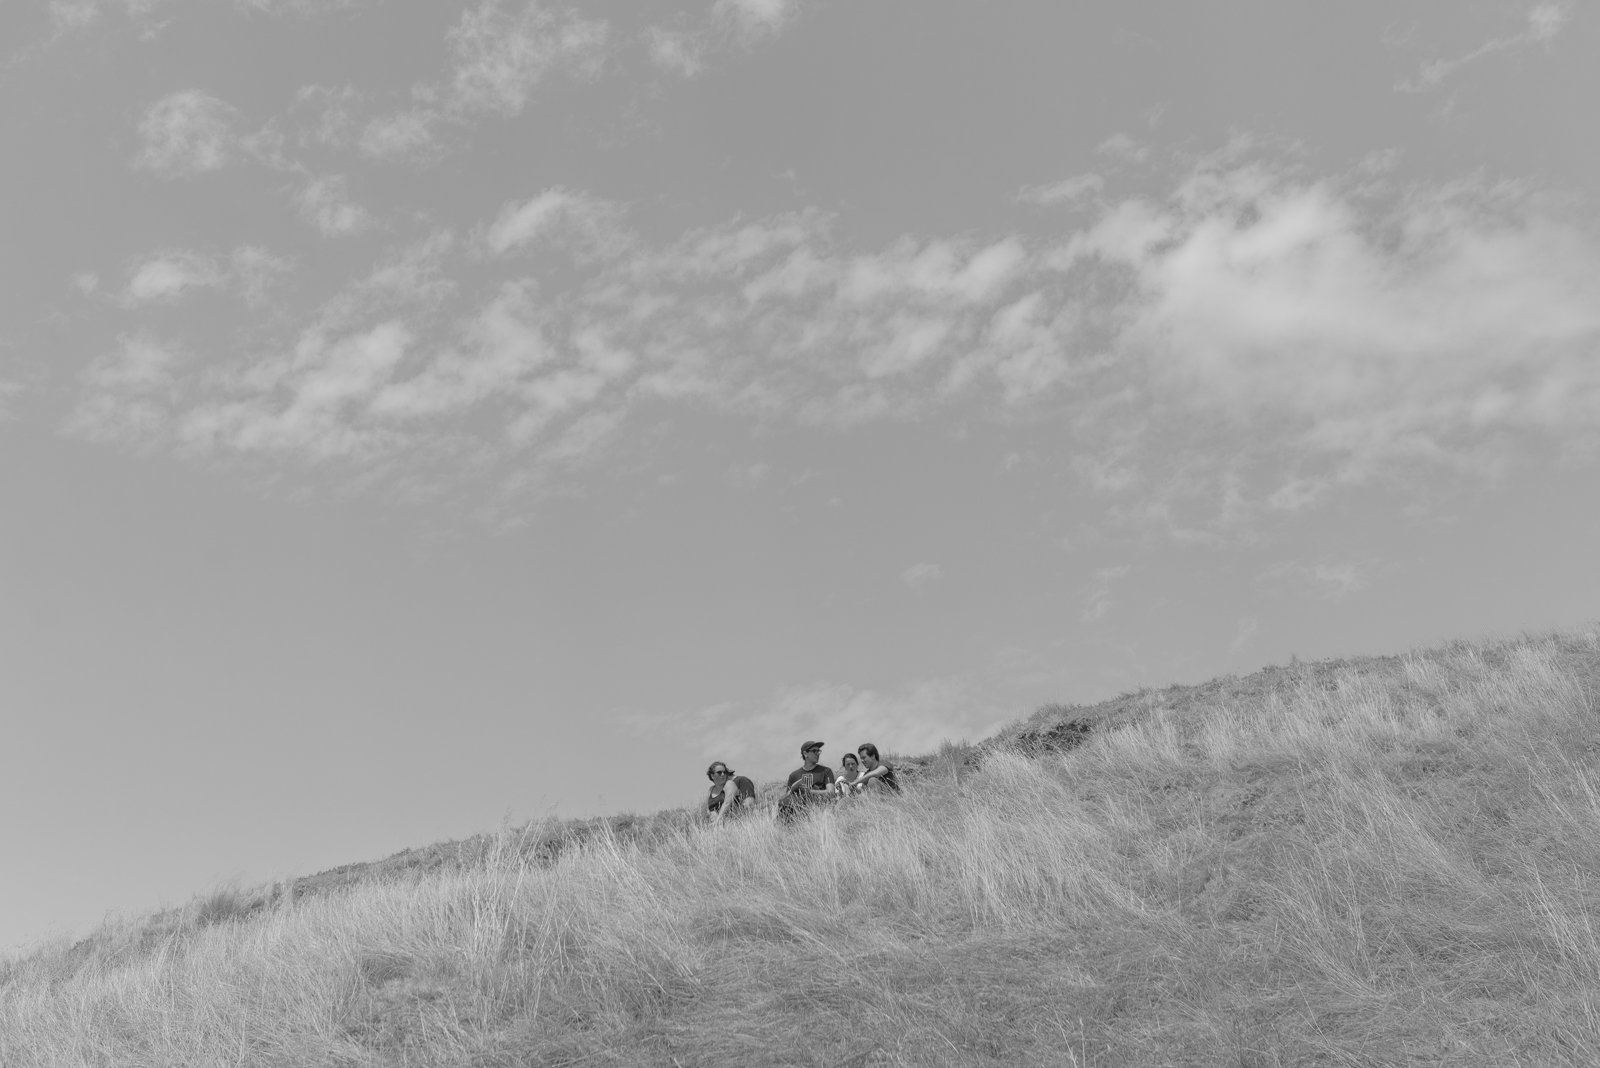 Group on Hill